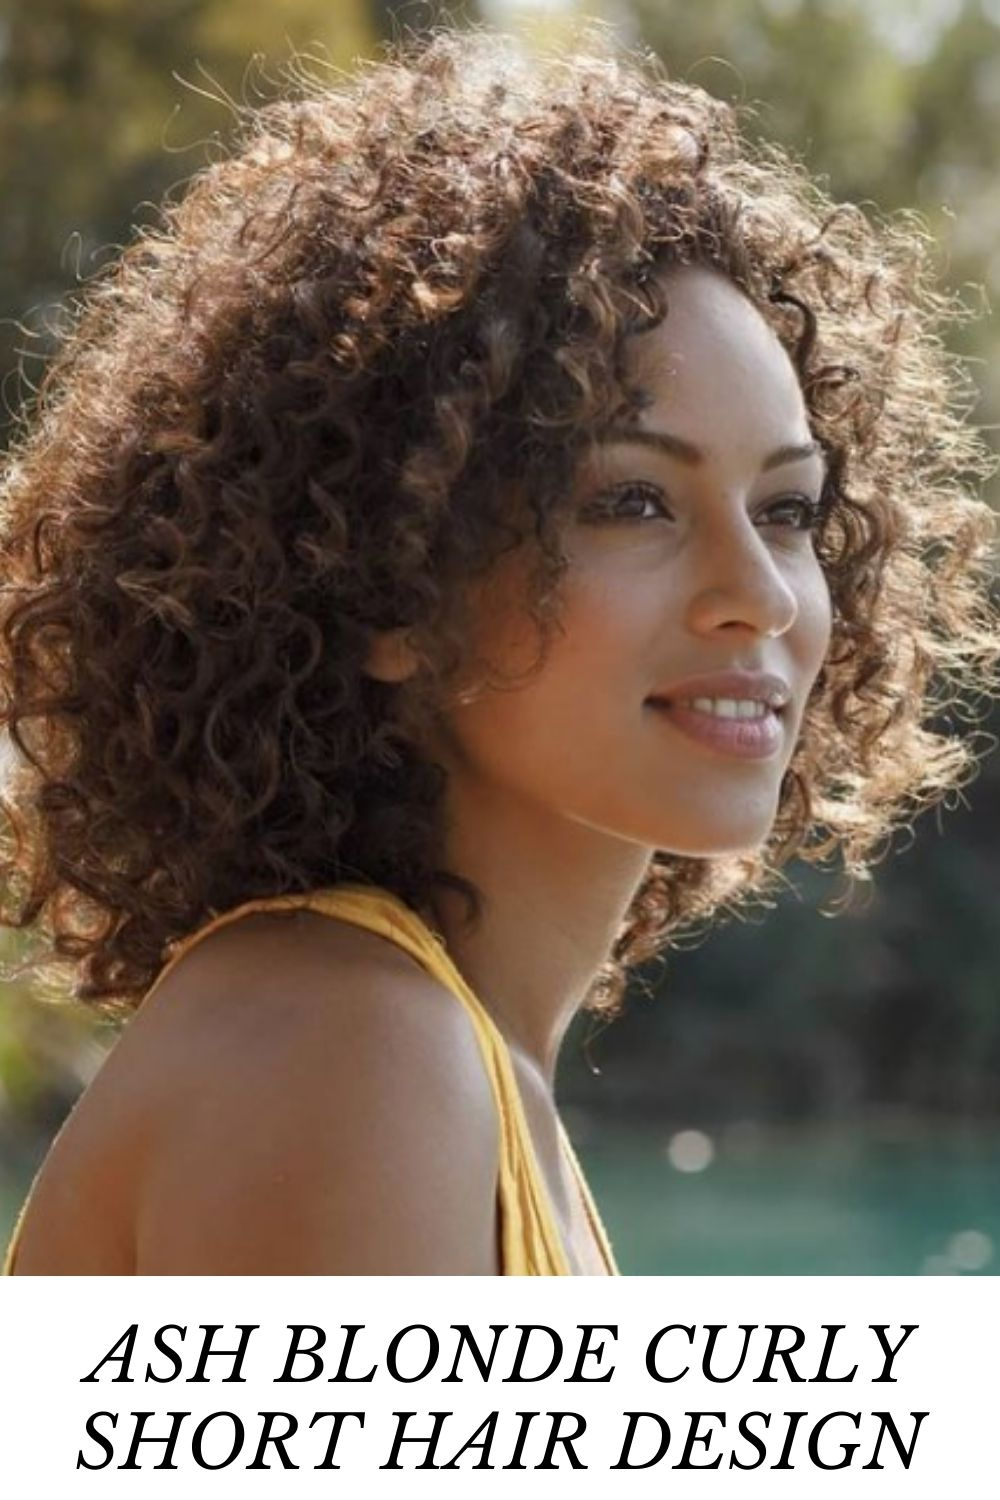 What Is The Best Haircut For Short Curly Hairstyle?